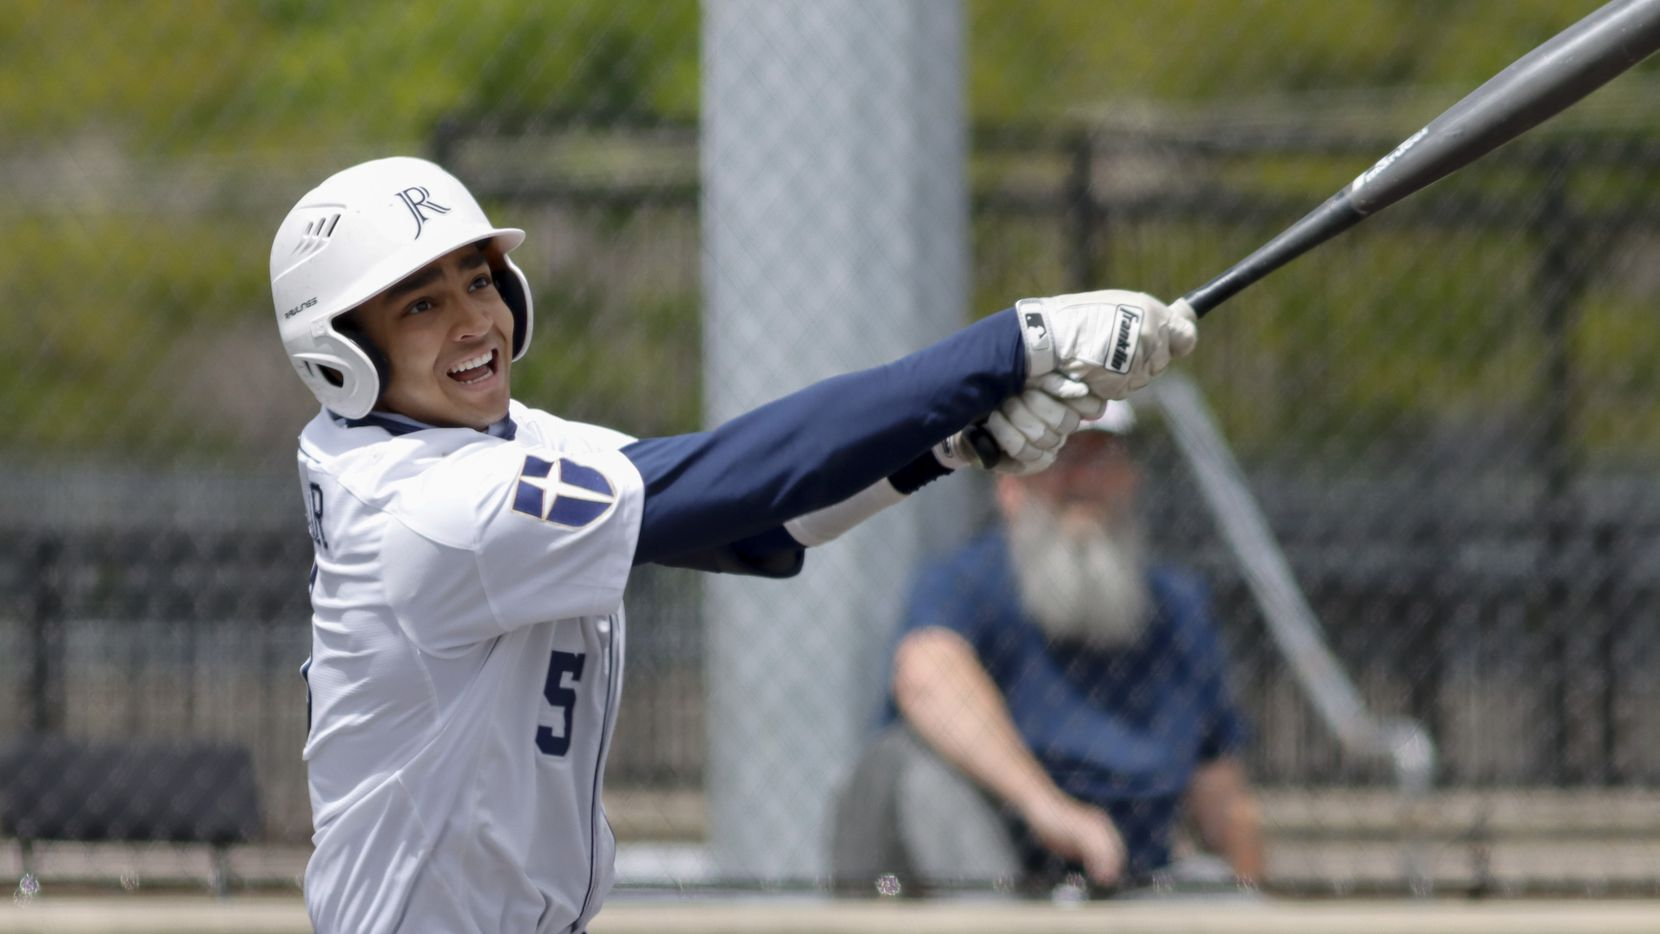 Jesuit shortstop Jordan Lawlar swings for a pitch during a district 7-6A game against Richardson at Jesuit College Preparatory in Dallas, Saturday, April 24, 2021.